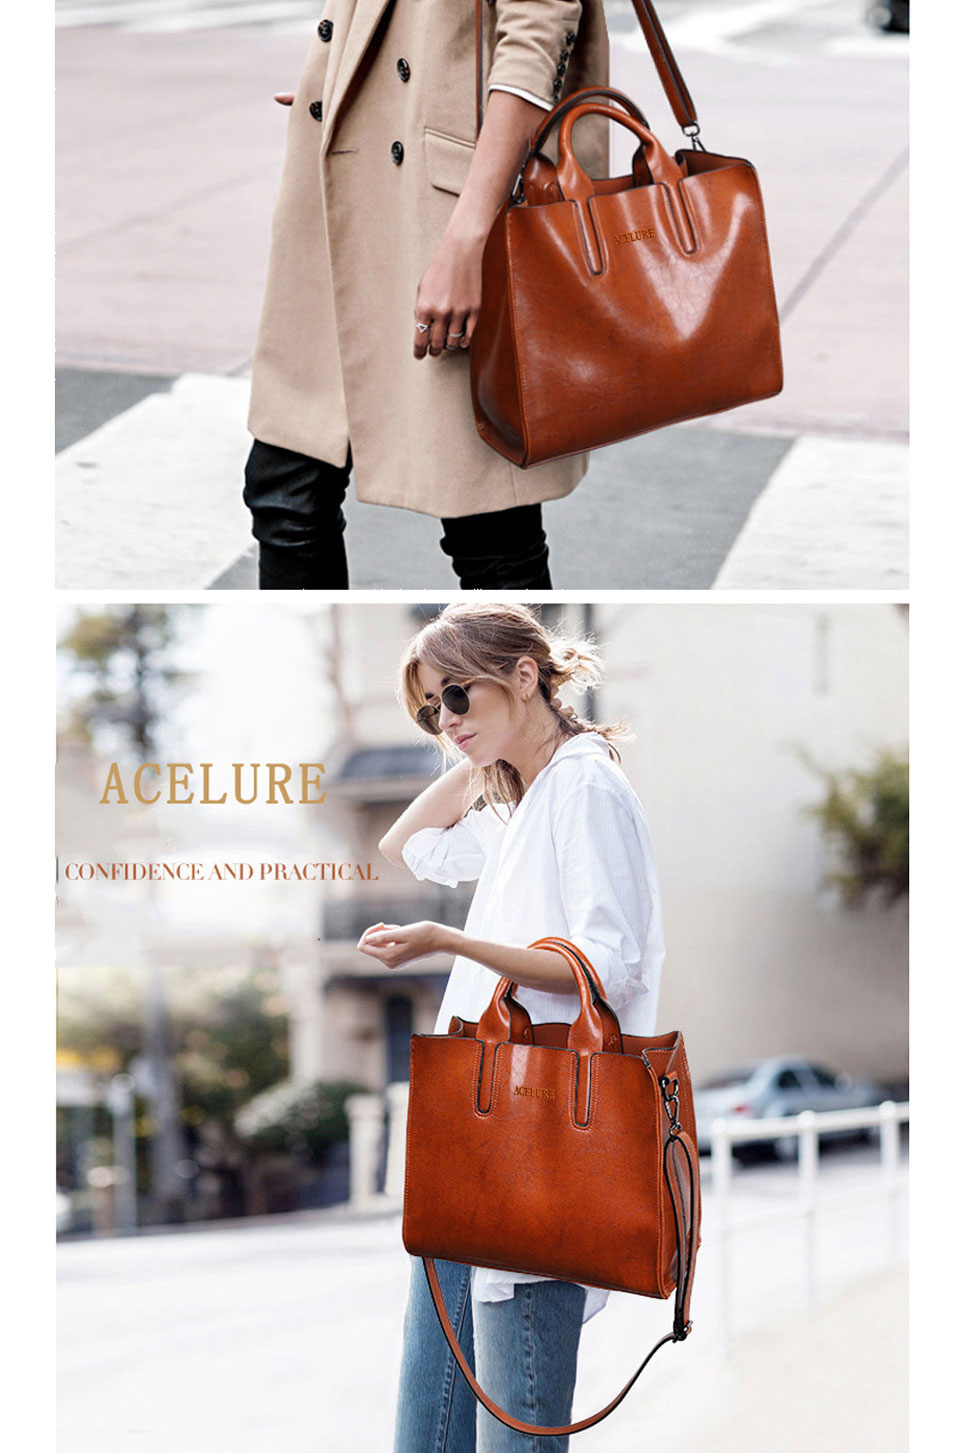 ACELURE Leather Handbags Big Women Bag High Quality Casual Female Bags Trunk Tote Spanish Brand Shoulder Bag Ladies Large Bolsos 8